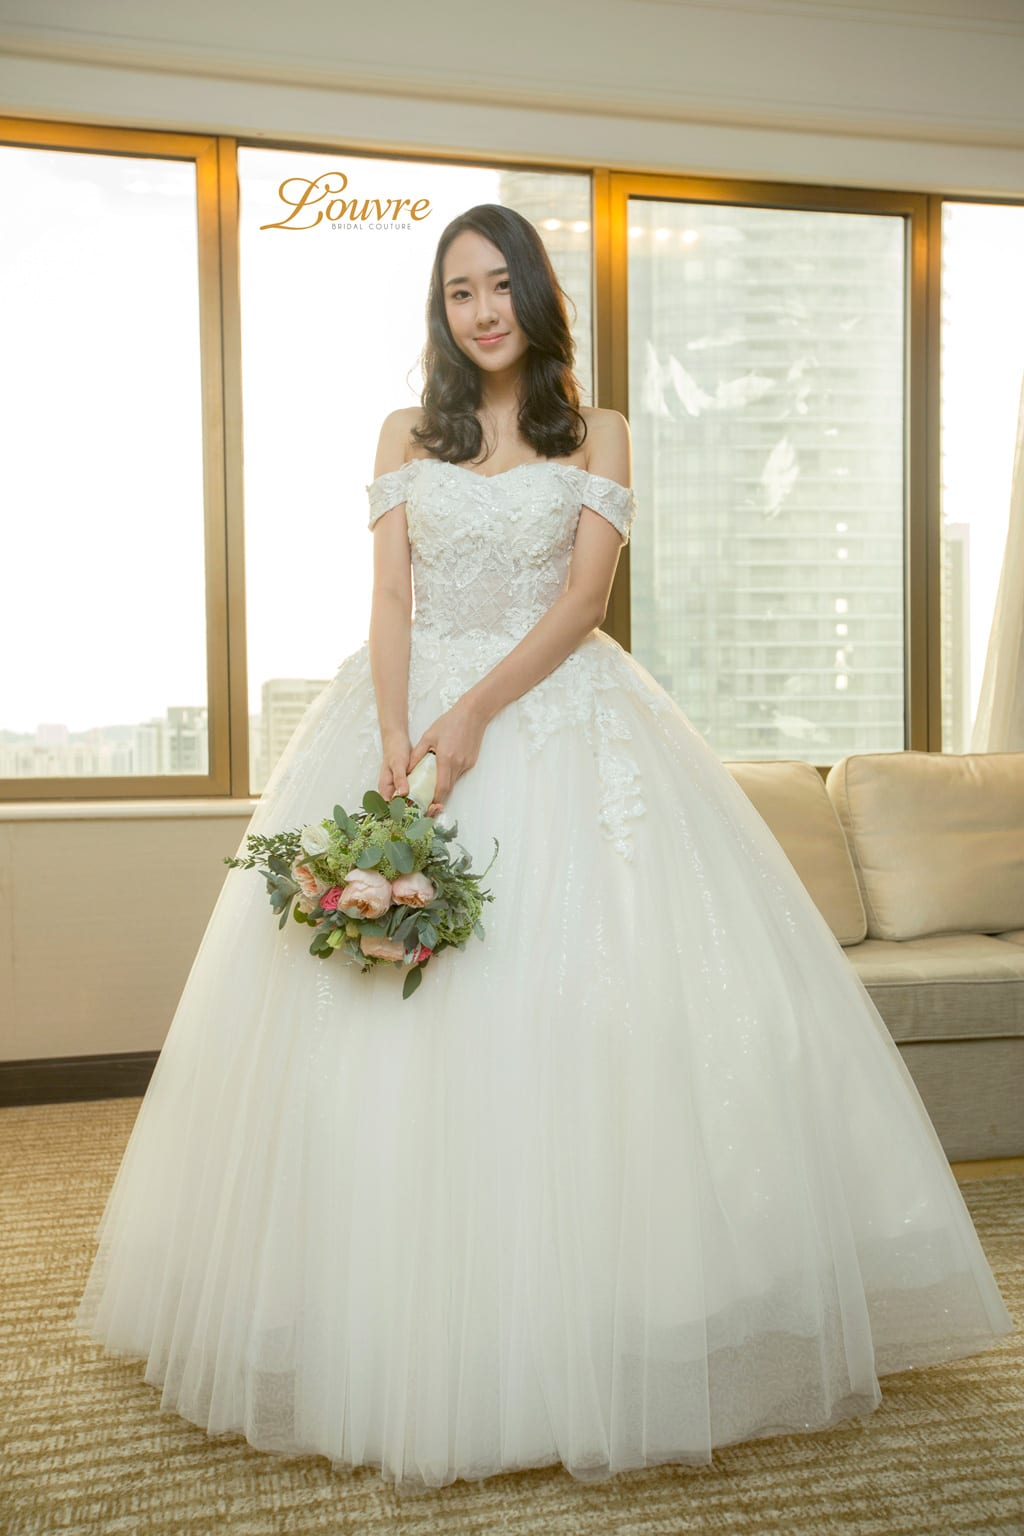 Wedding Dress Rental 3 Most Popular Dress Style For Singpapore Brides,Wedding Dresses For Tall Curvy Brides